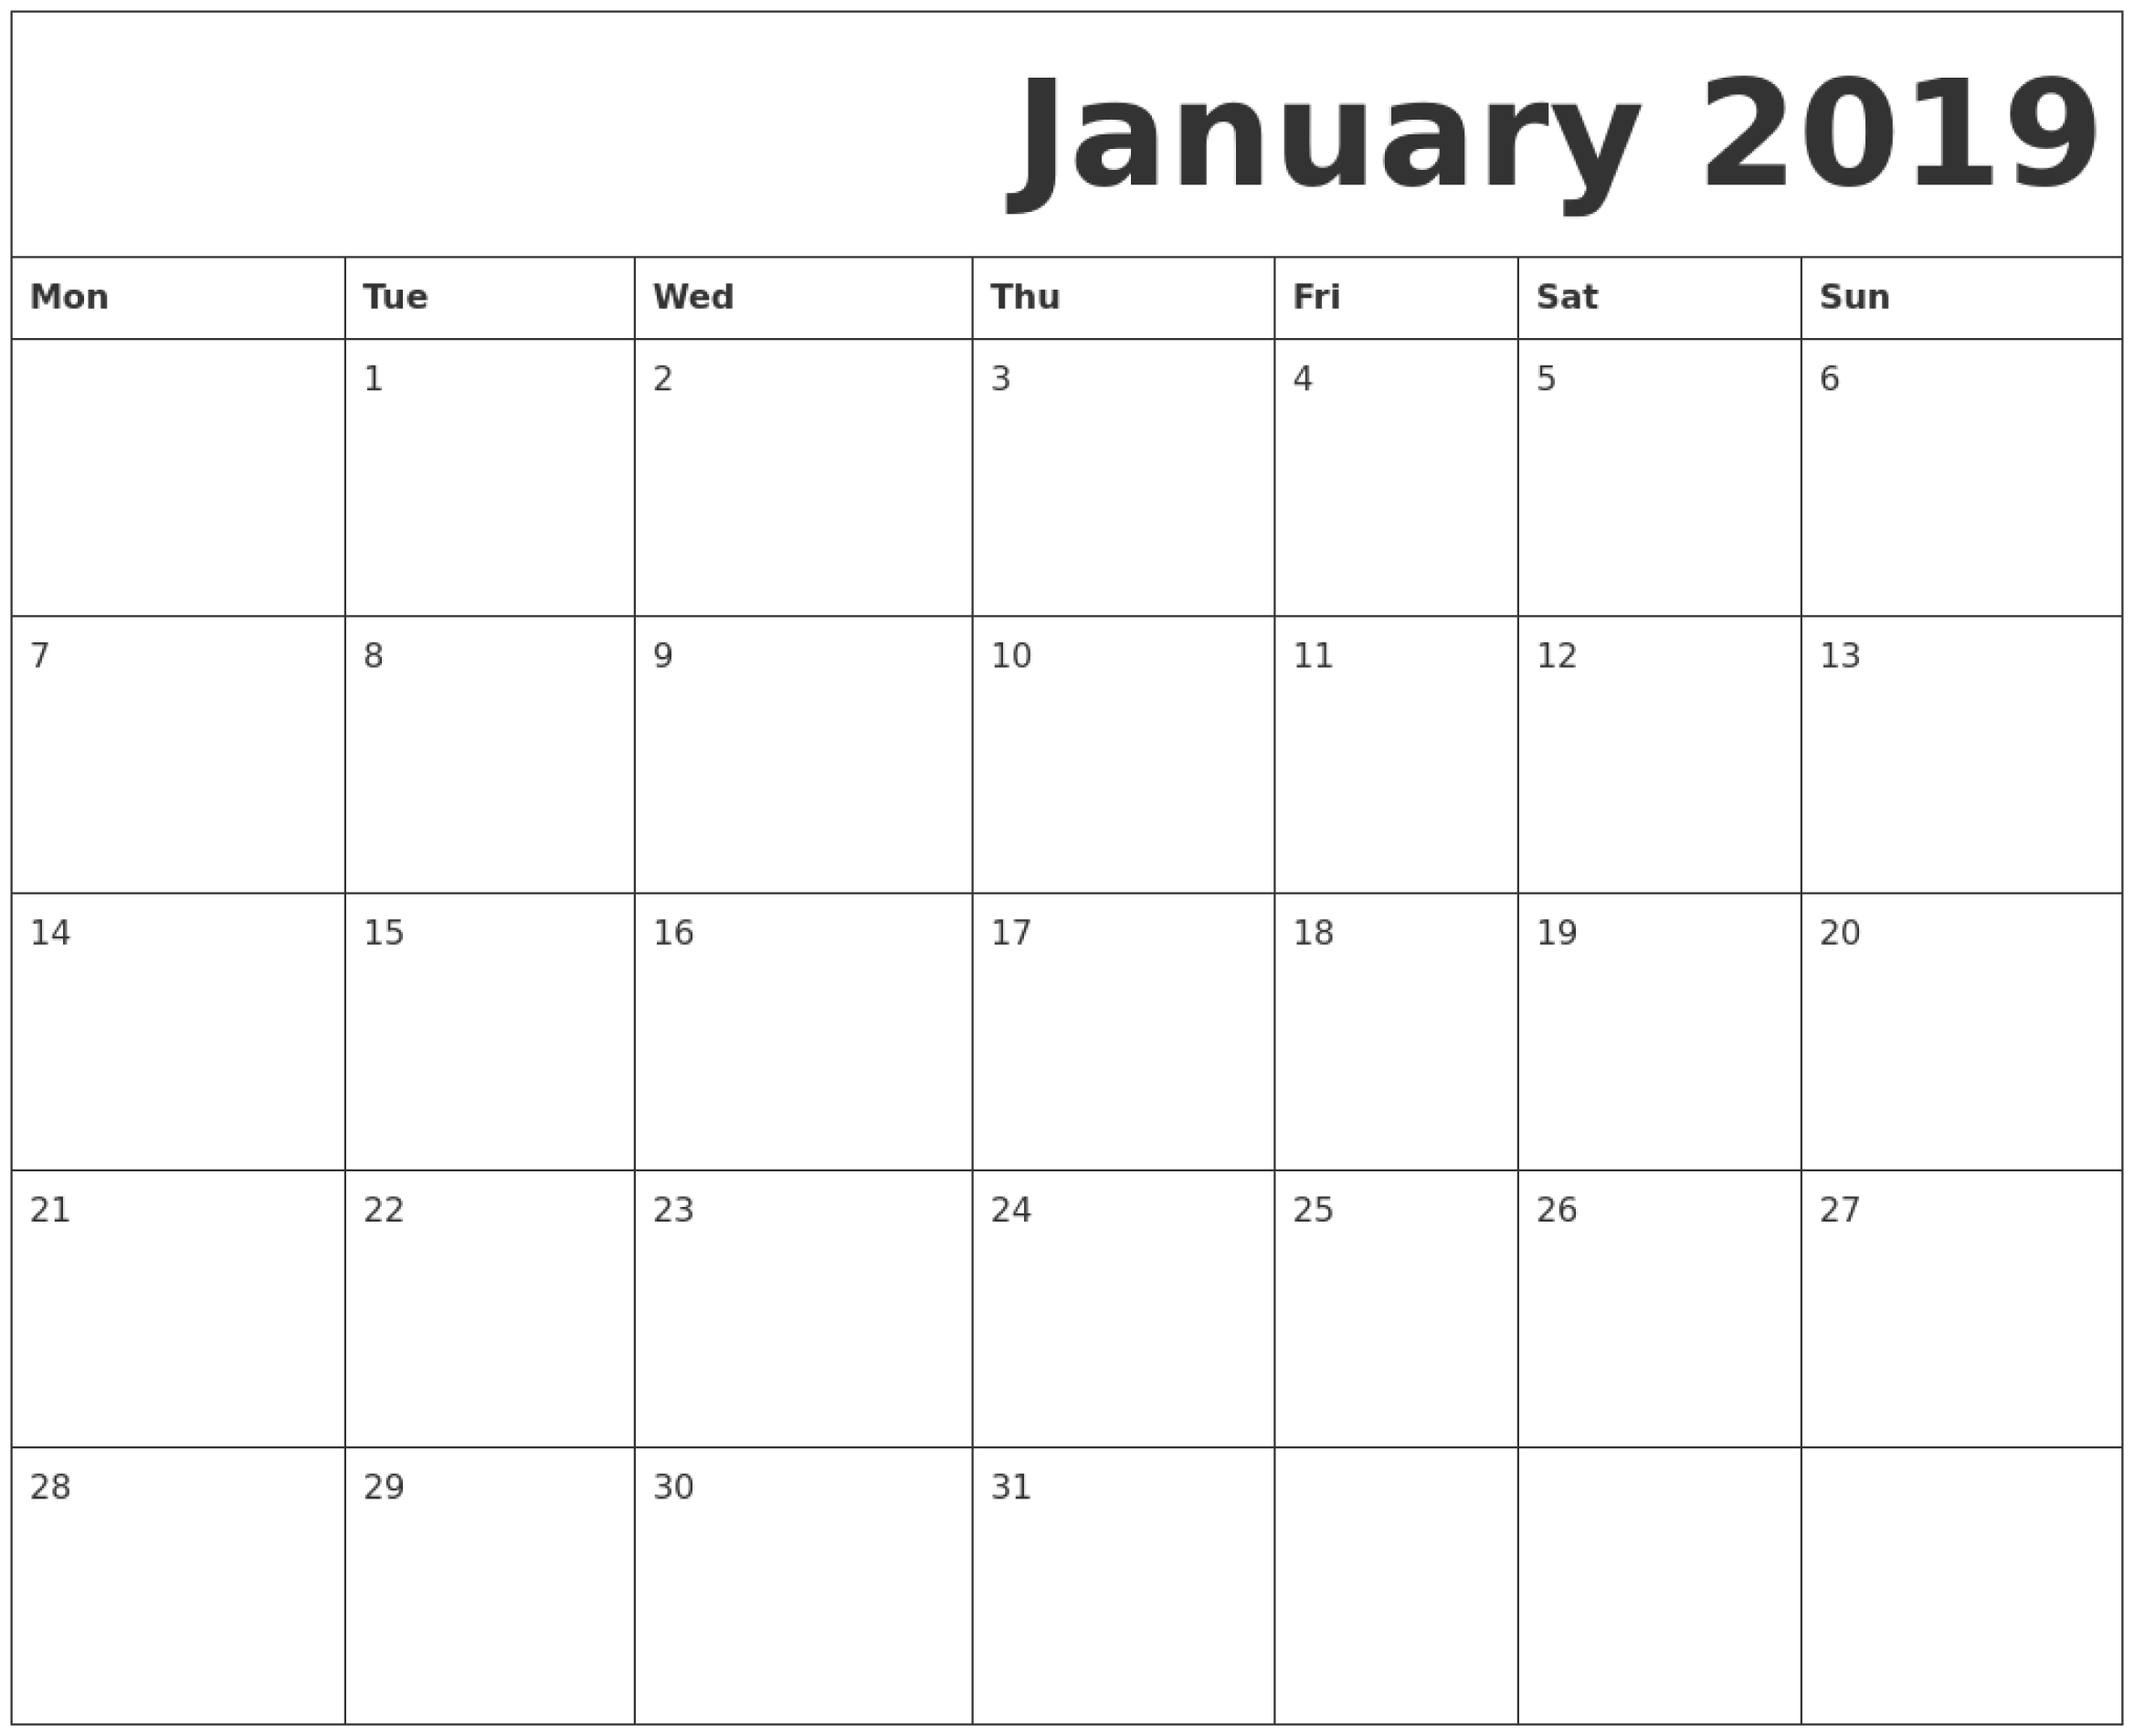 January 2019 Printable Calendar Monday Start. | January 2019 for Calendar Blank Printable Monday Start A4